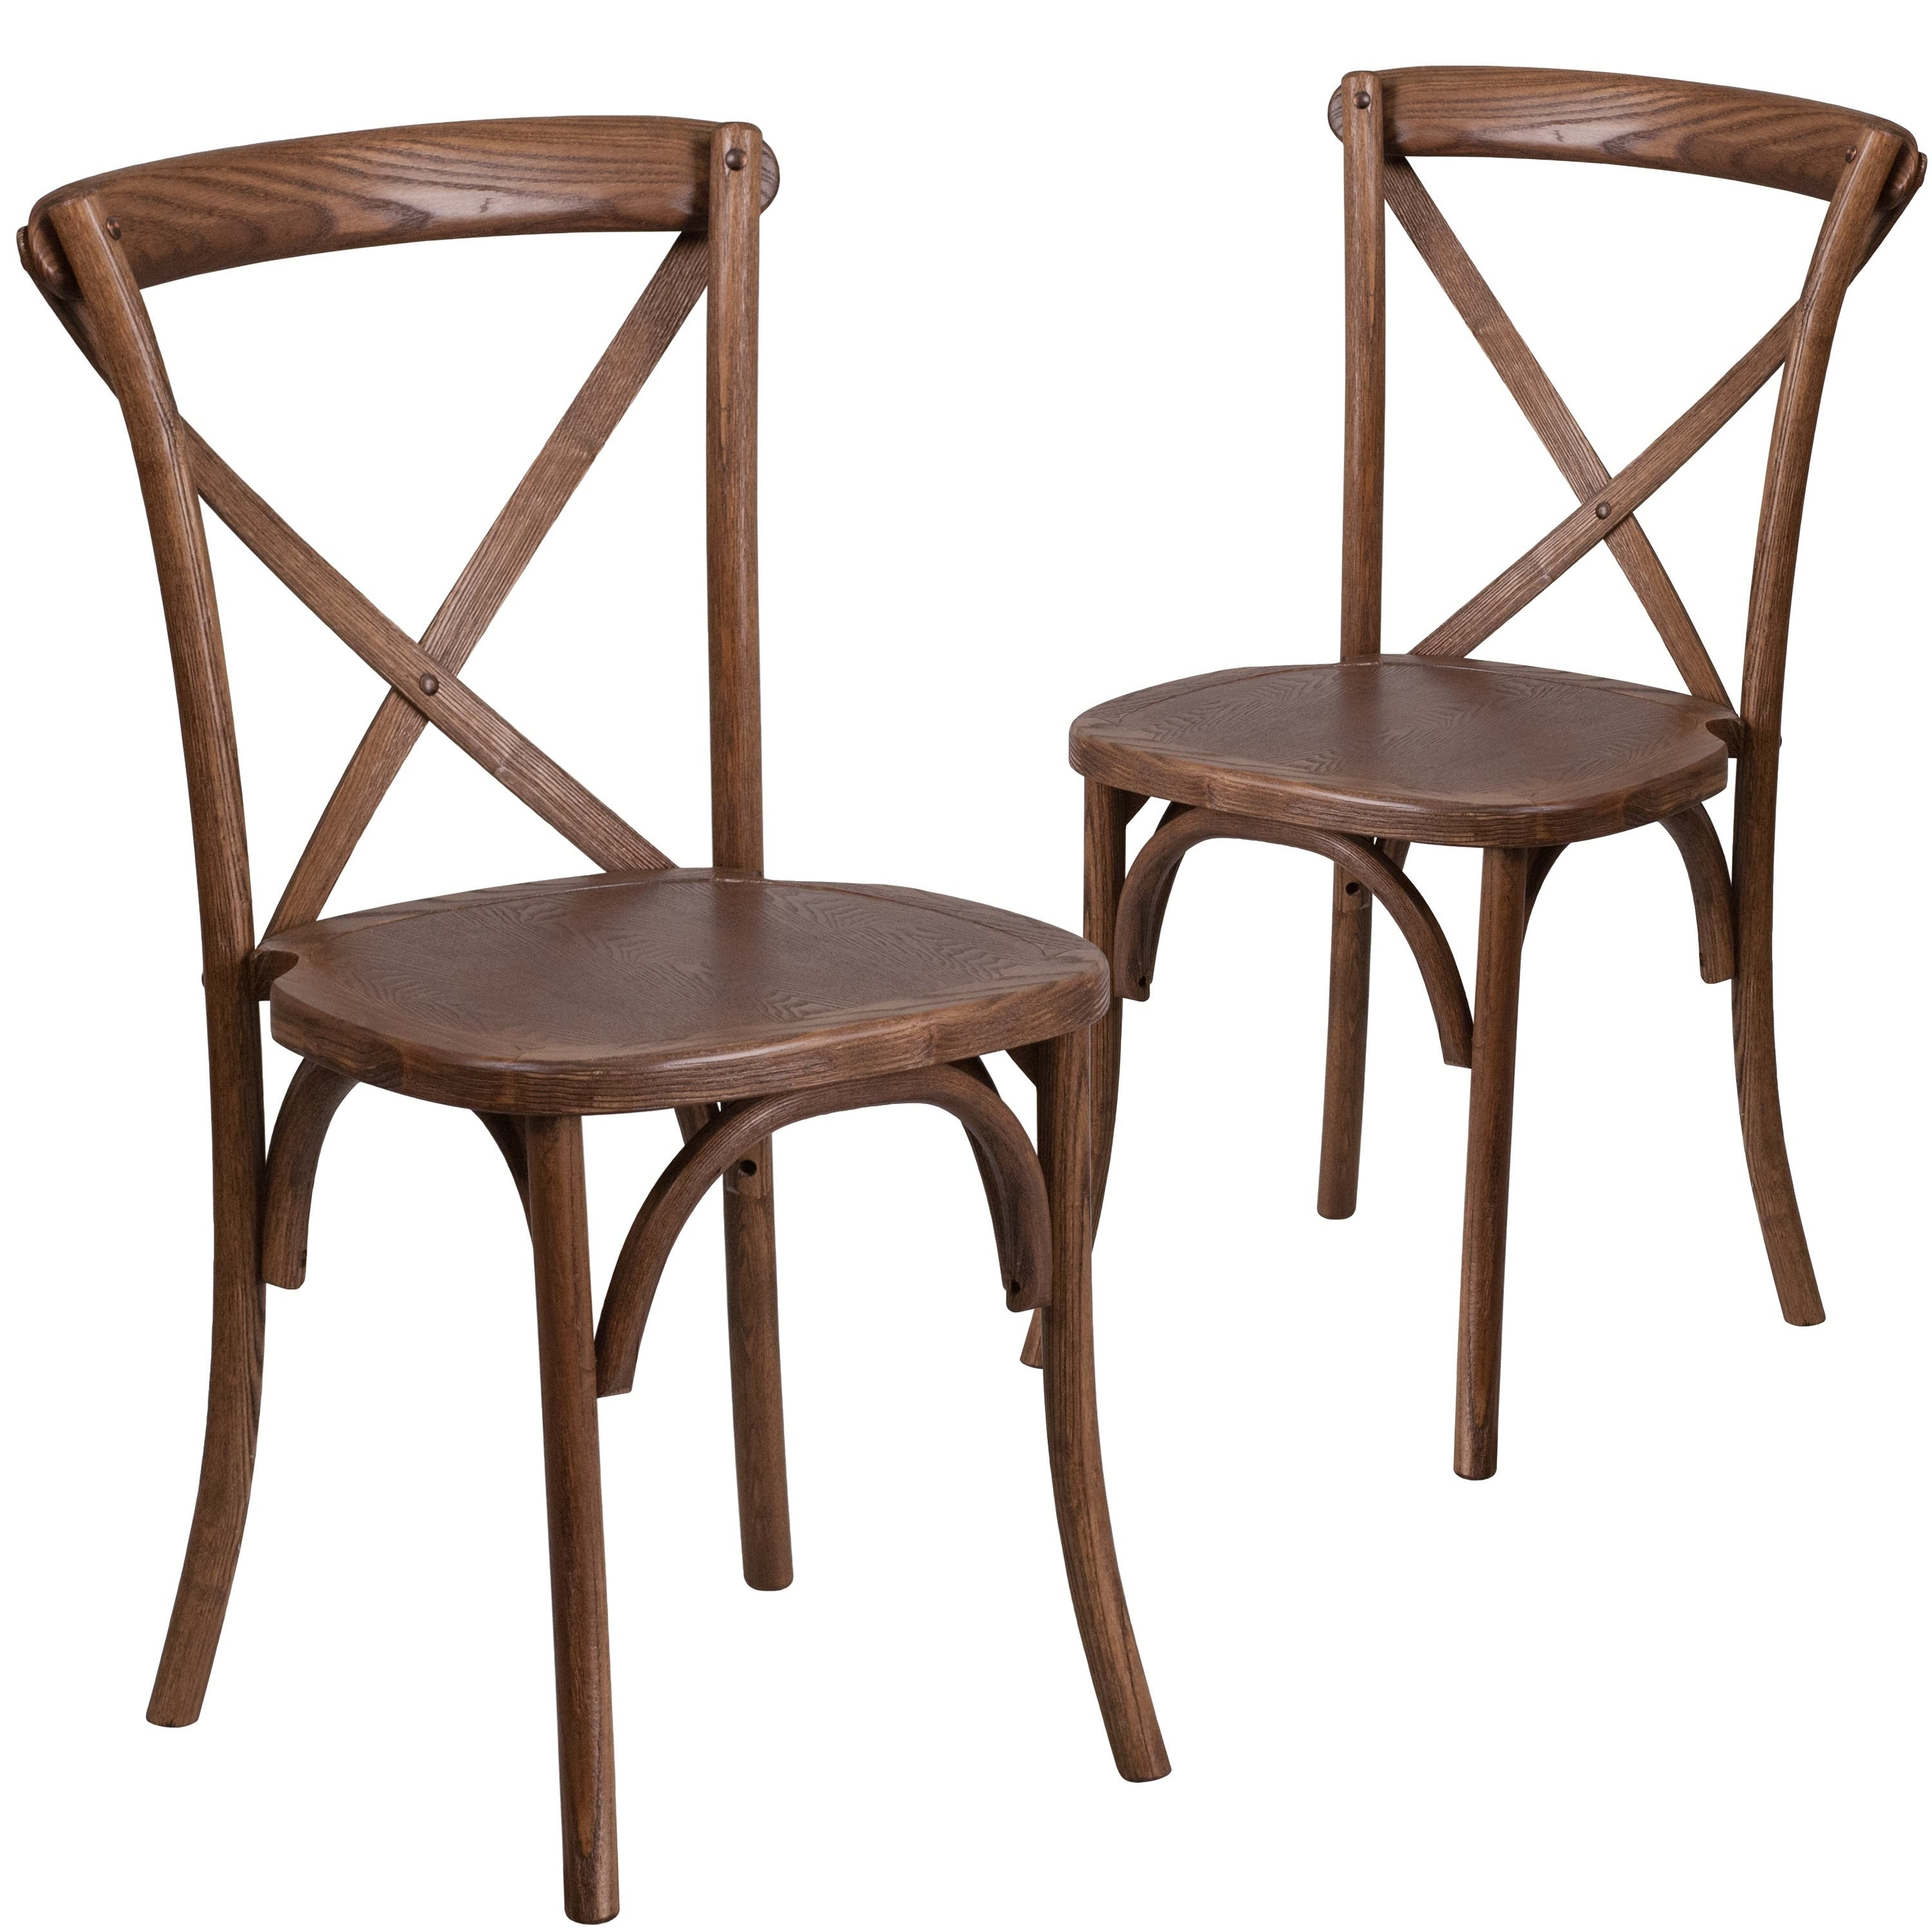 Dining Room Us: Buy Kitchen & Dining Room Chairs Online At Overstock